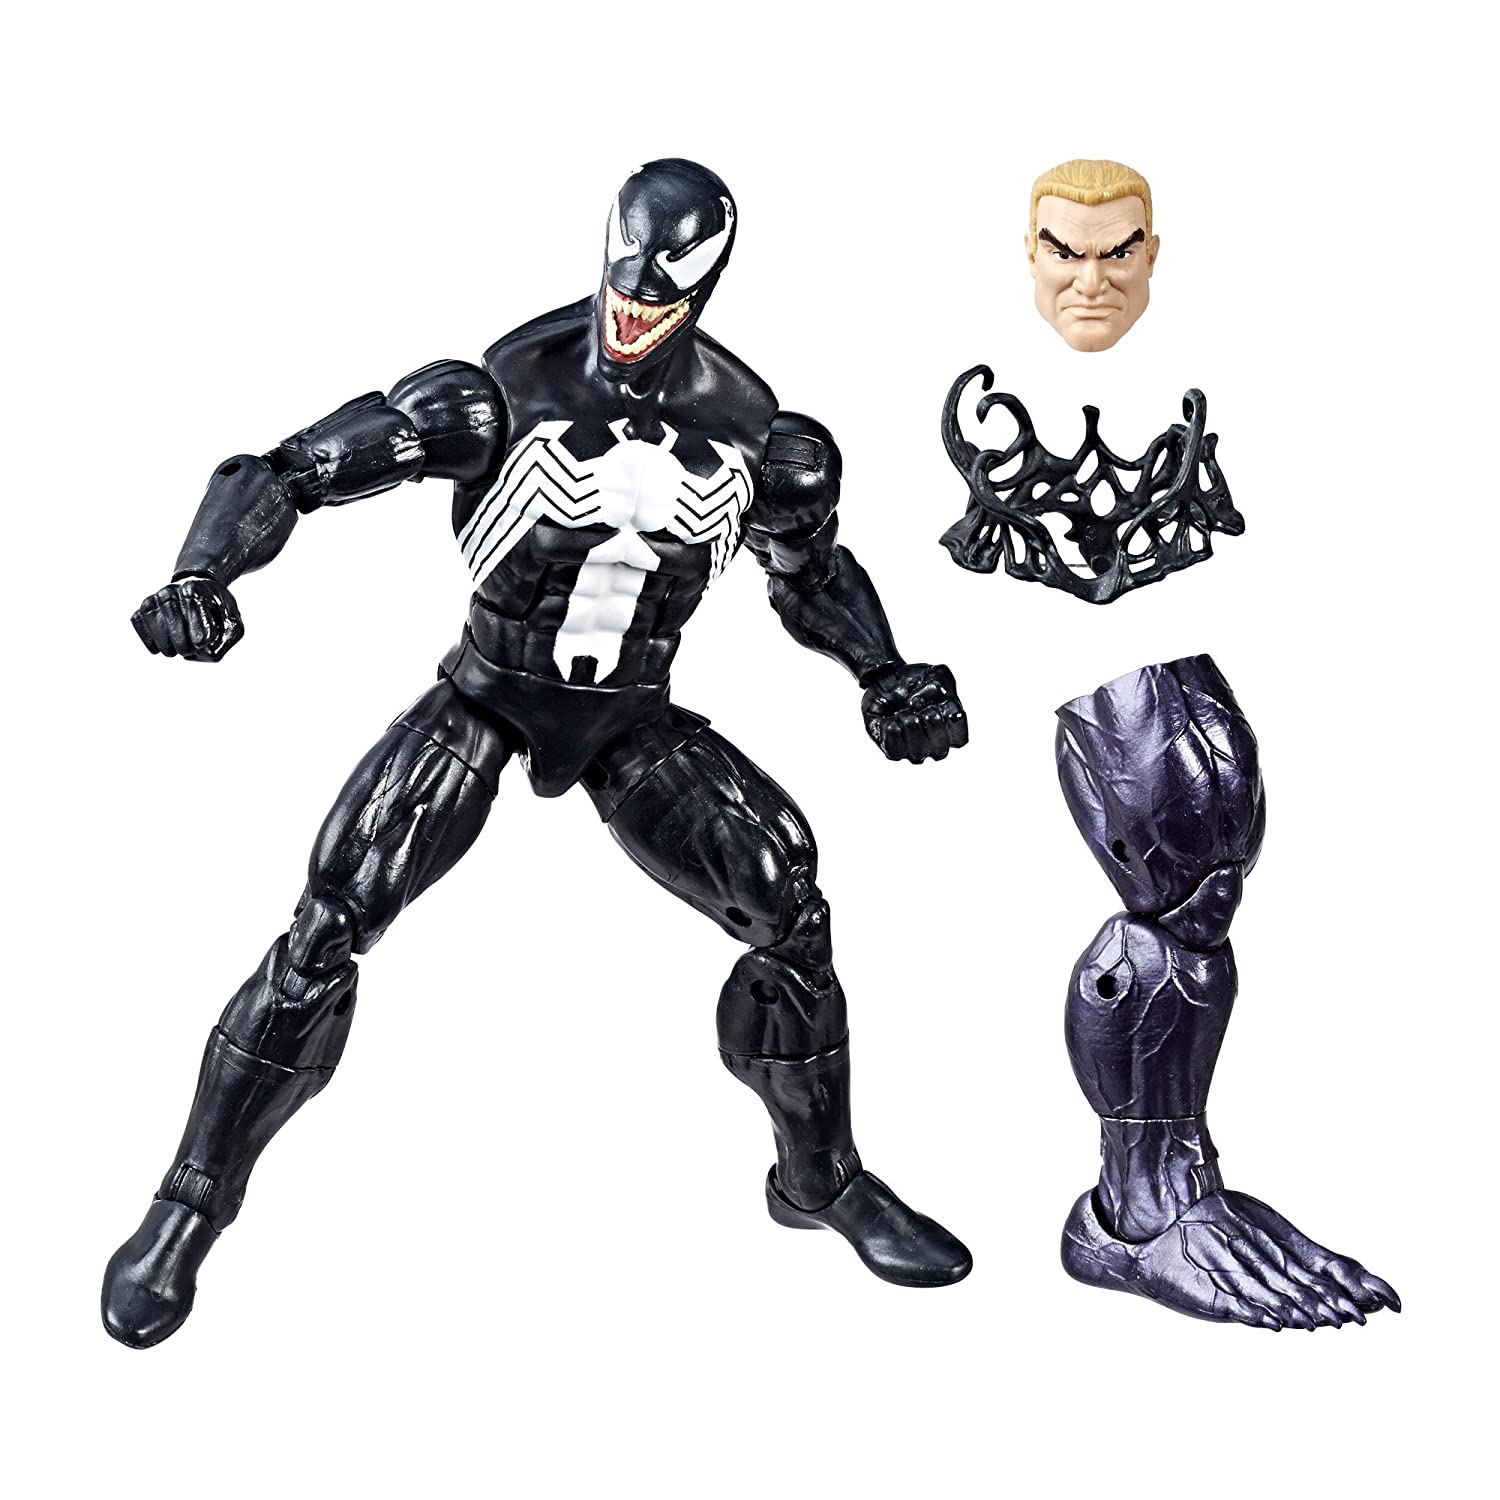 Marvel Legends Series 6-inch Venom Hasbro E2942